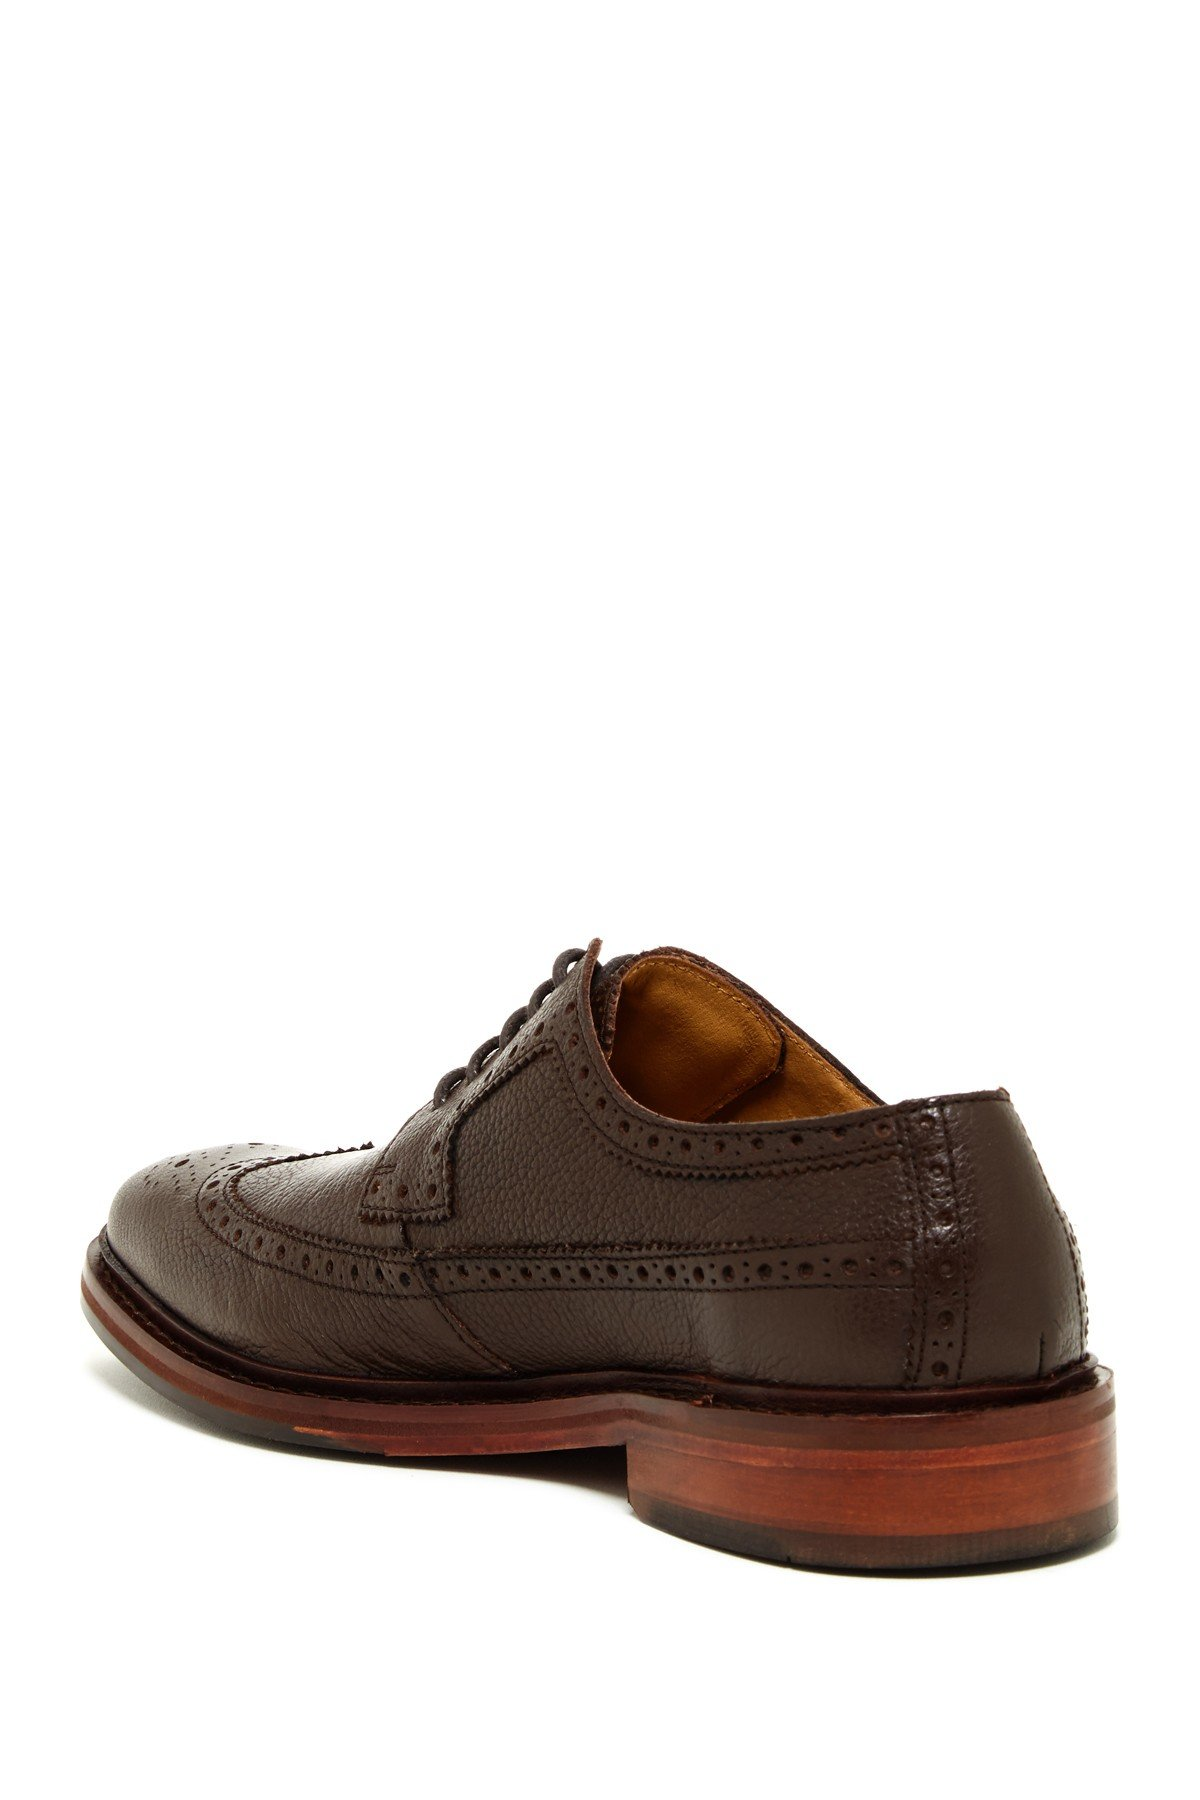 Cole Haan Coach Brown Shoes